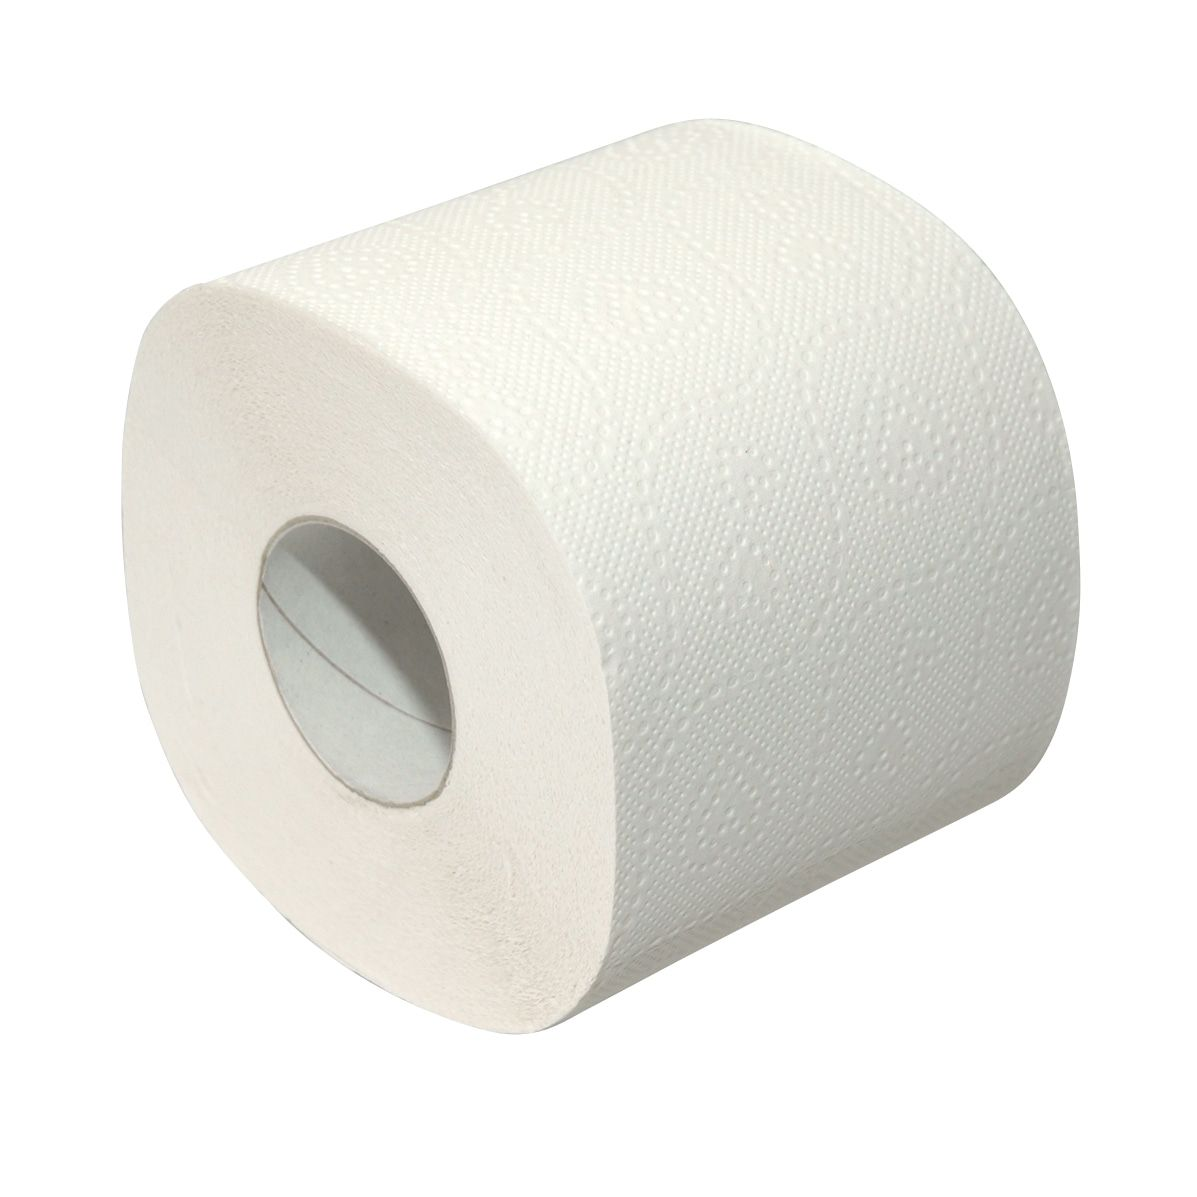 10% korting Toiletpapier supersoft cellulose 4 laags 72rollen (237004)